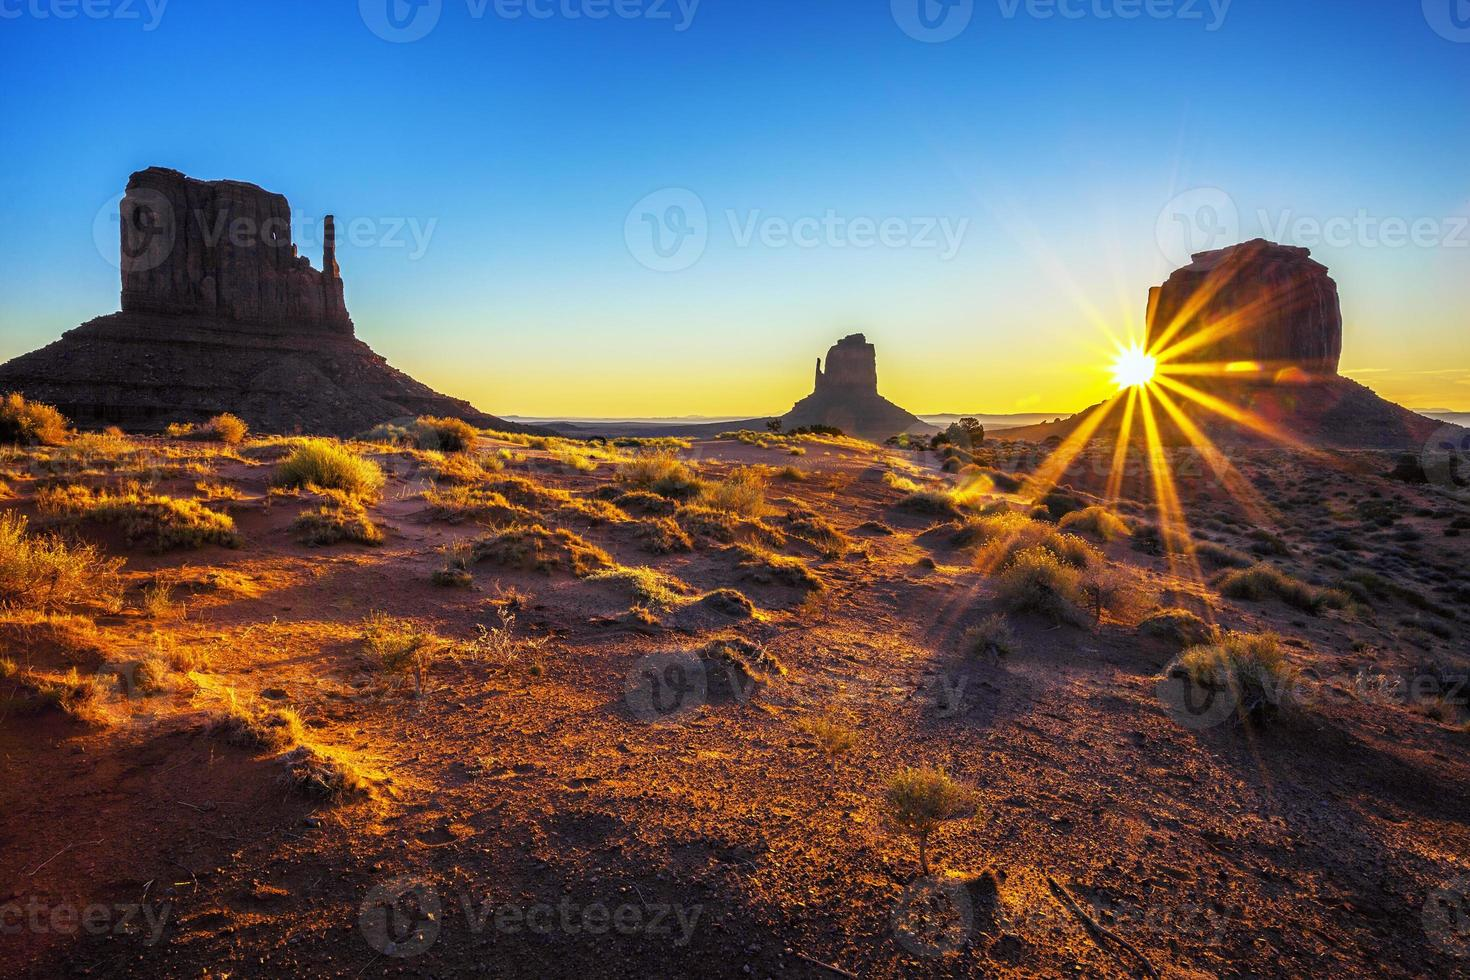 Sunrise at Monument Valley photo